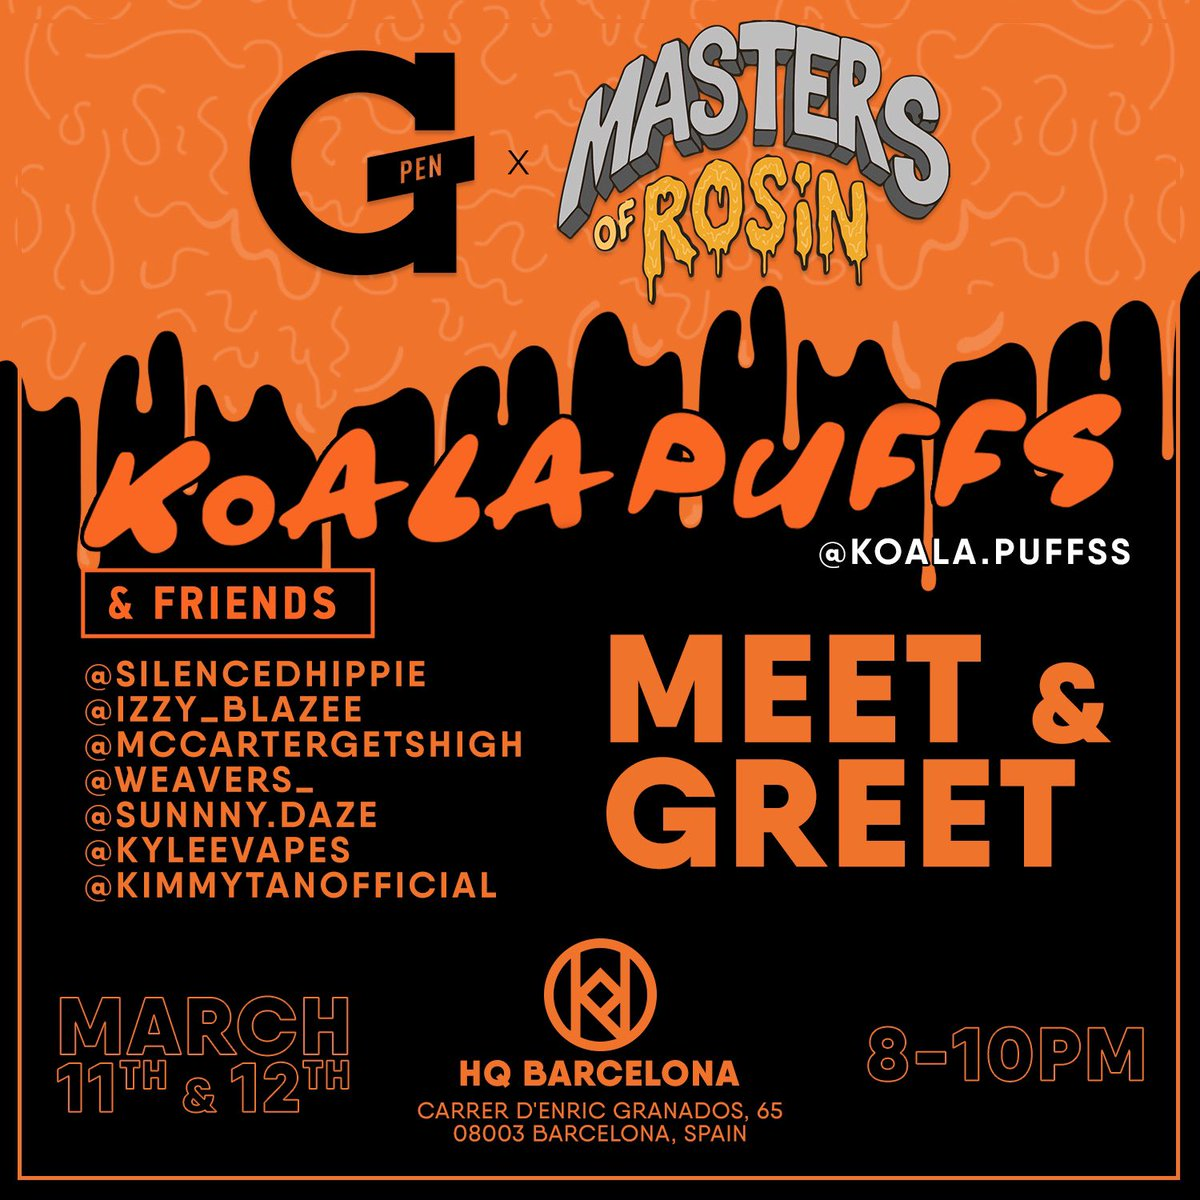 Spain meetup? Let's do it!! Come say hi and let's smoke 😍 https://t.co/1iy8qDfLGY